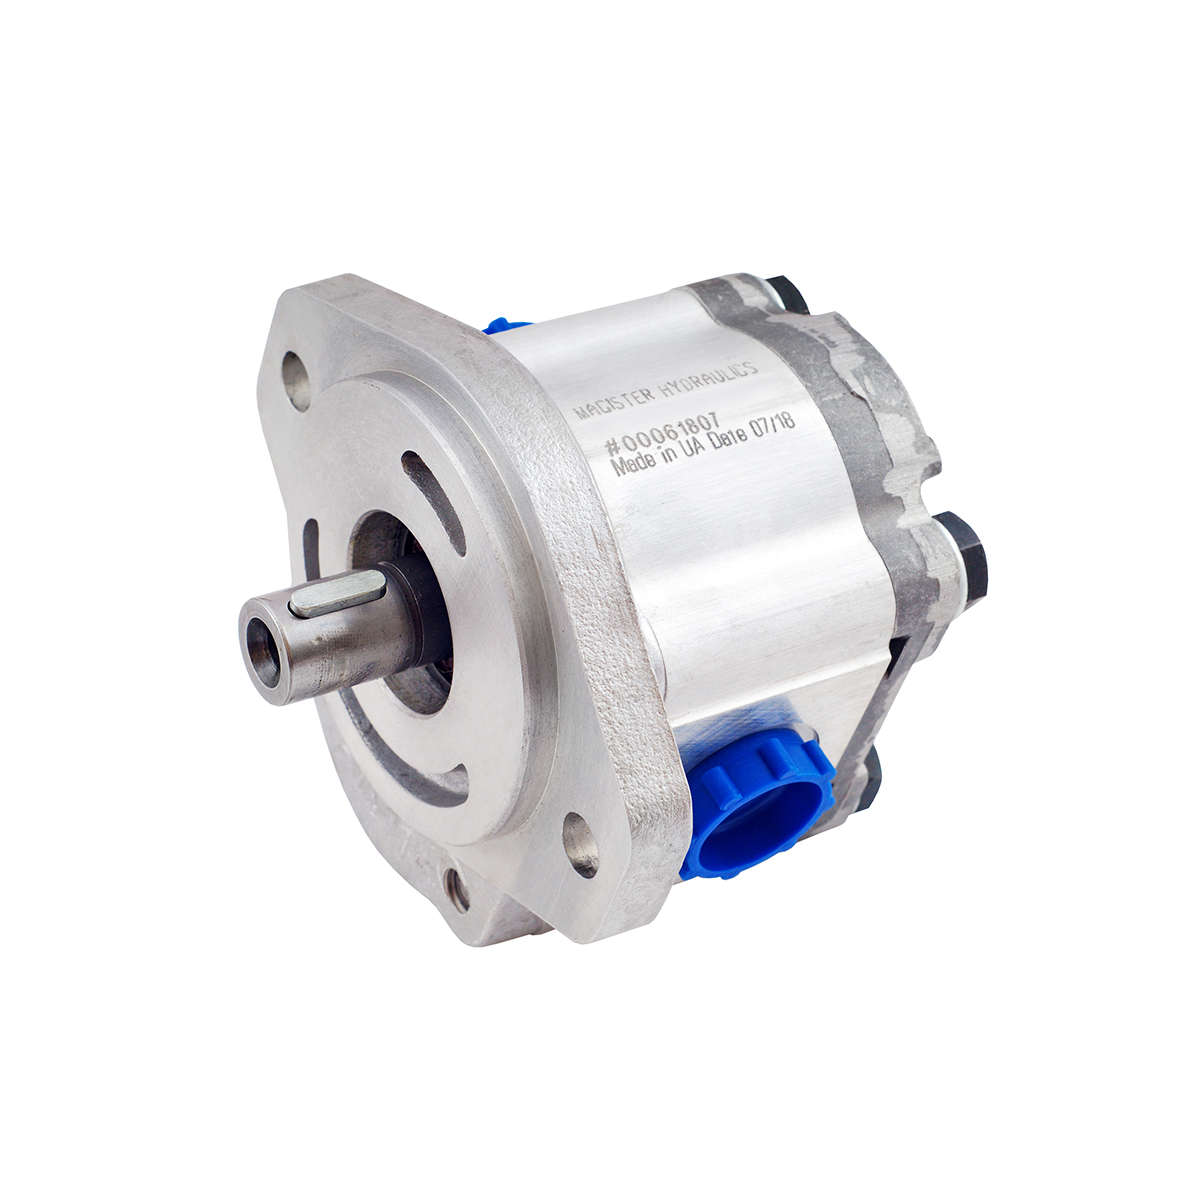 0.97 CID hydraulic gear pump, 5/8 keyed shaft clockwise gear pump | Magister Hydraulics